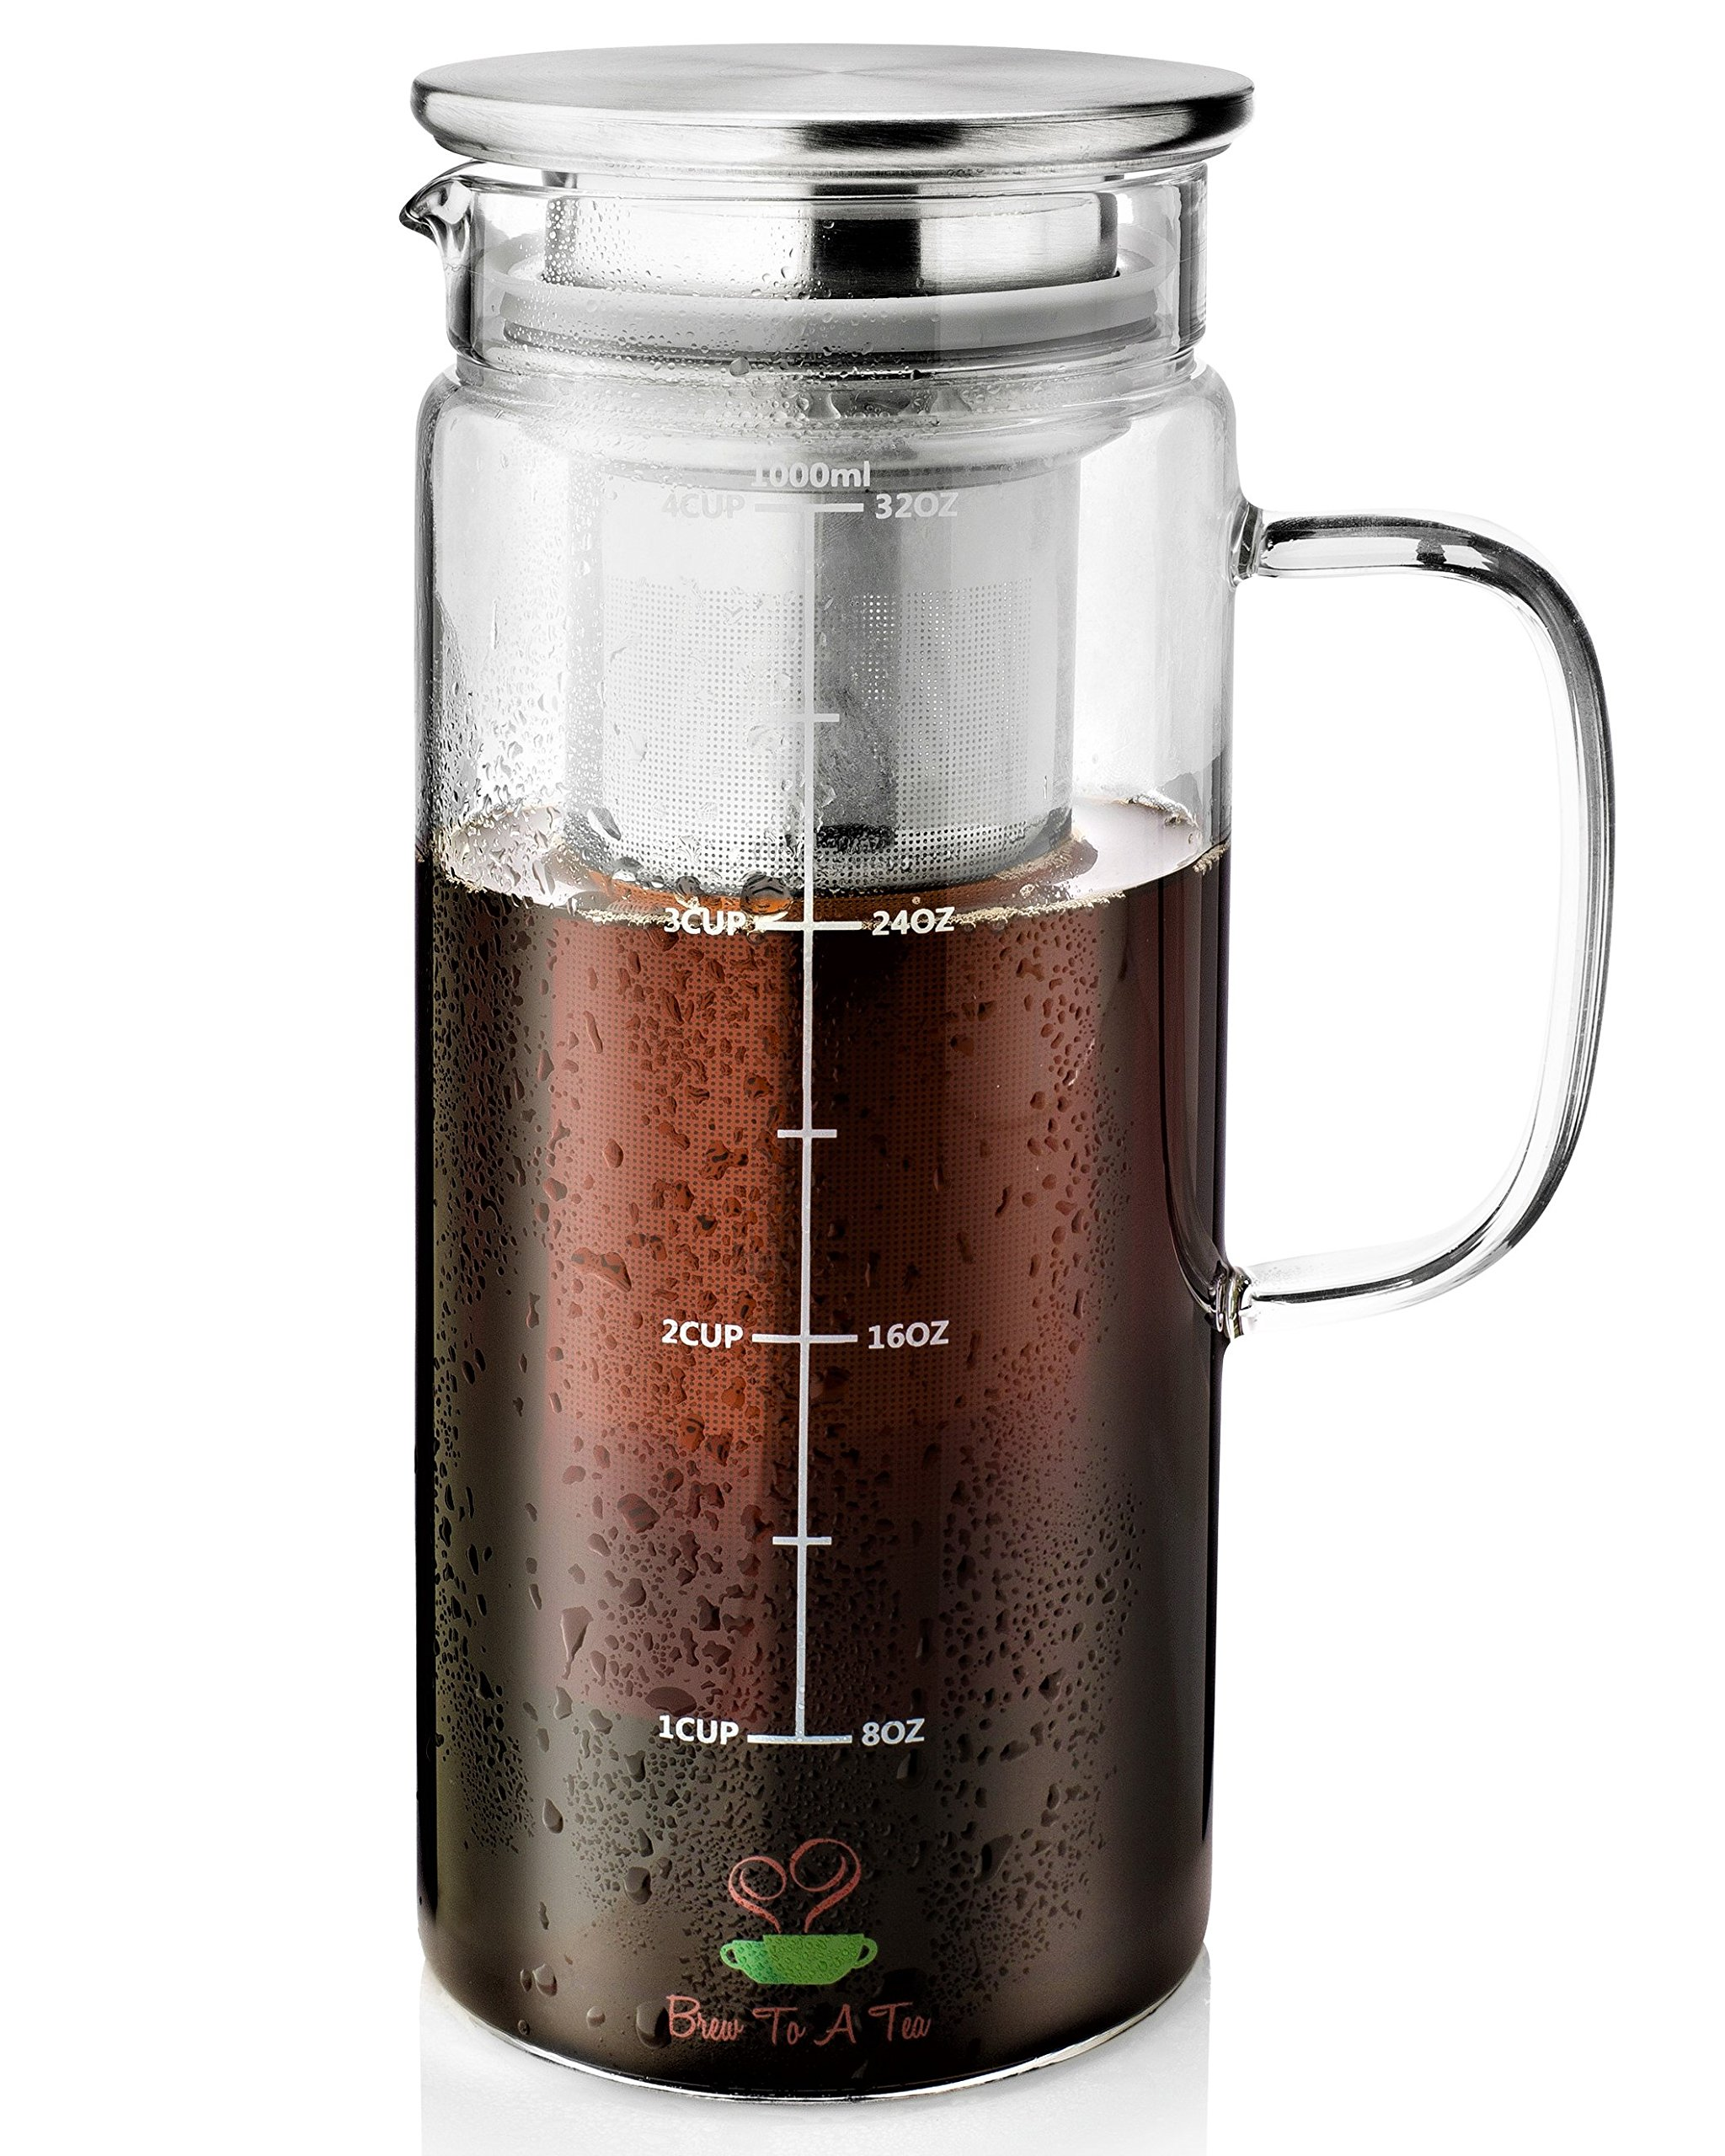 BTäT- Cold Brew Coffee Maker, 1 Quart,32 oz Iced Coffee Maker, Iced Tea Maker, Airtight Cold Brew Pitcher, Coffee Accessories, Cold Brew System, Cold Tea Brewing, Coffee Gift by Brew To A Tea